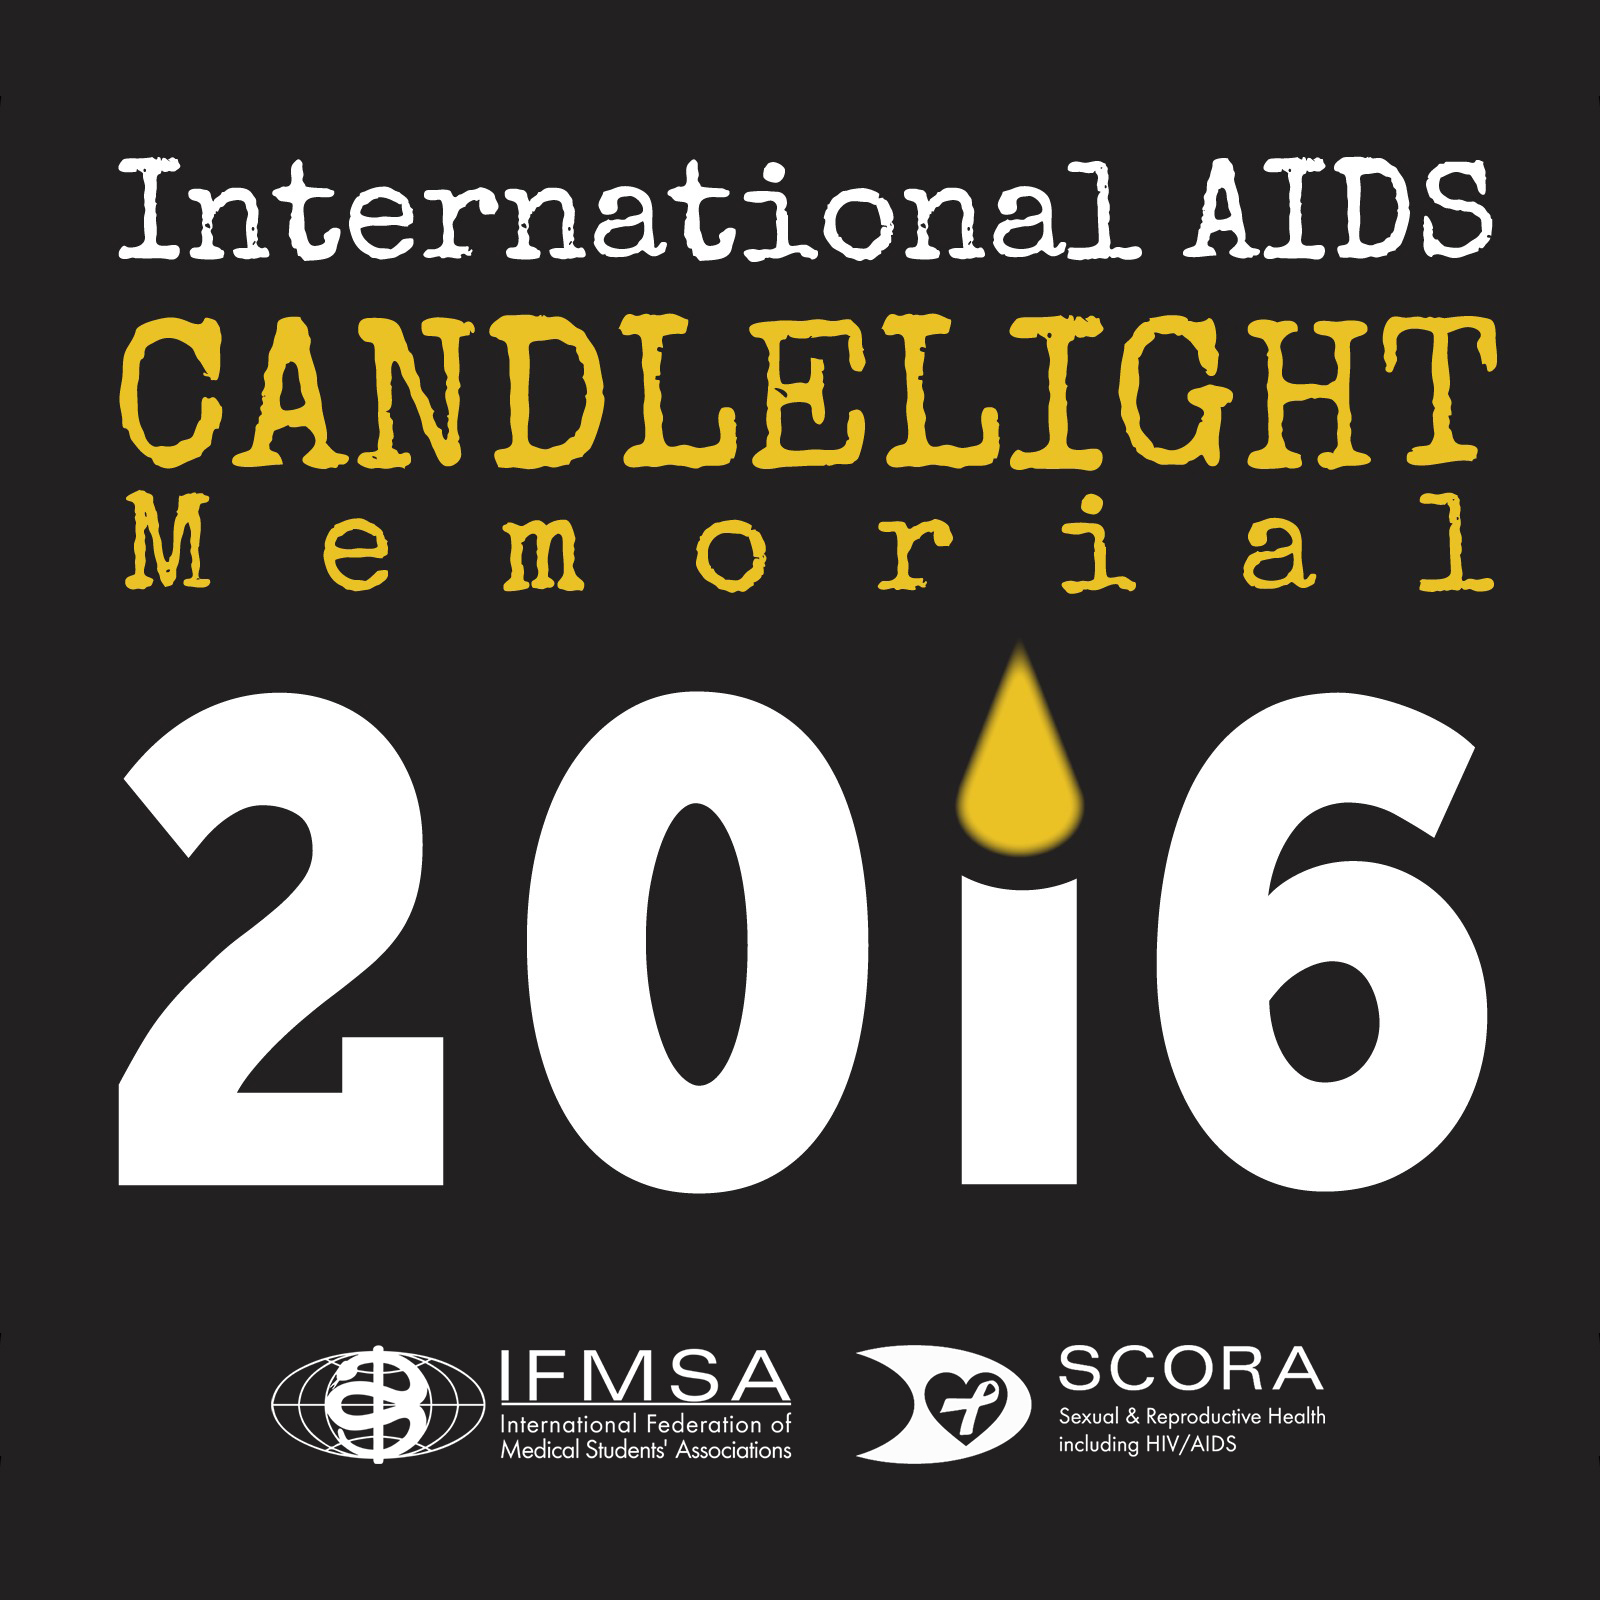 International AIDS Candlelight Memorial Day Statement